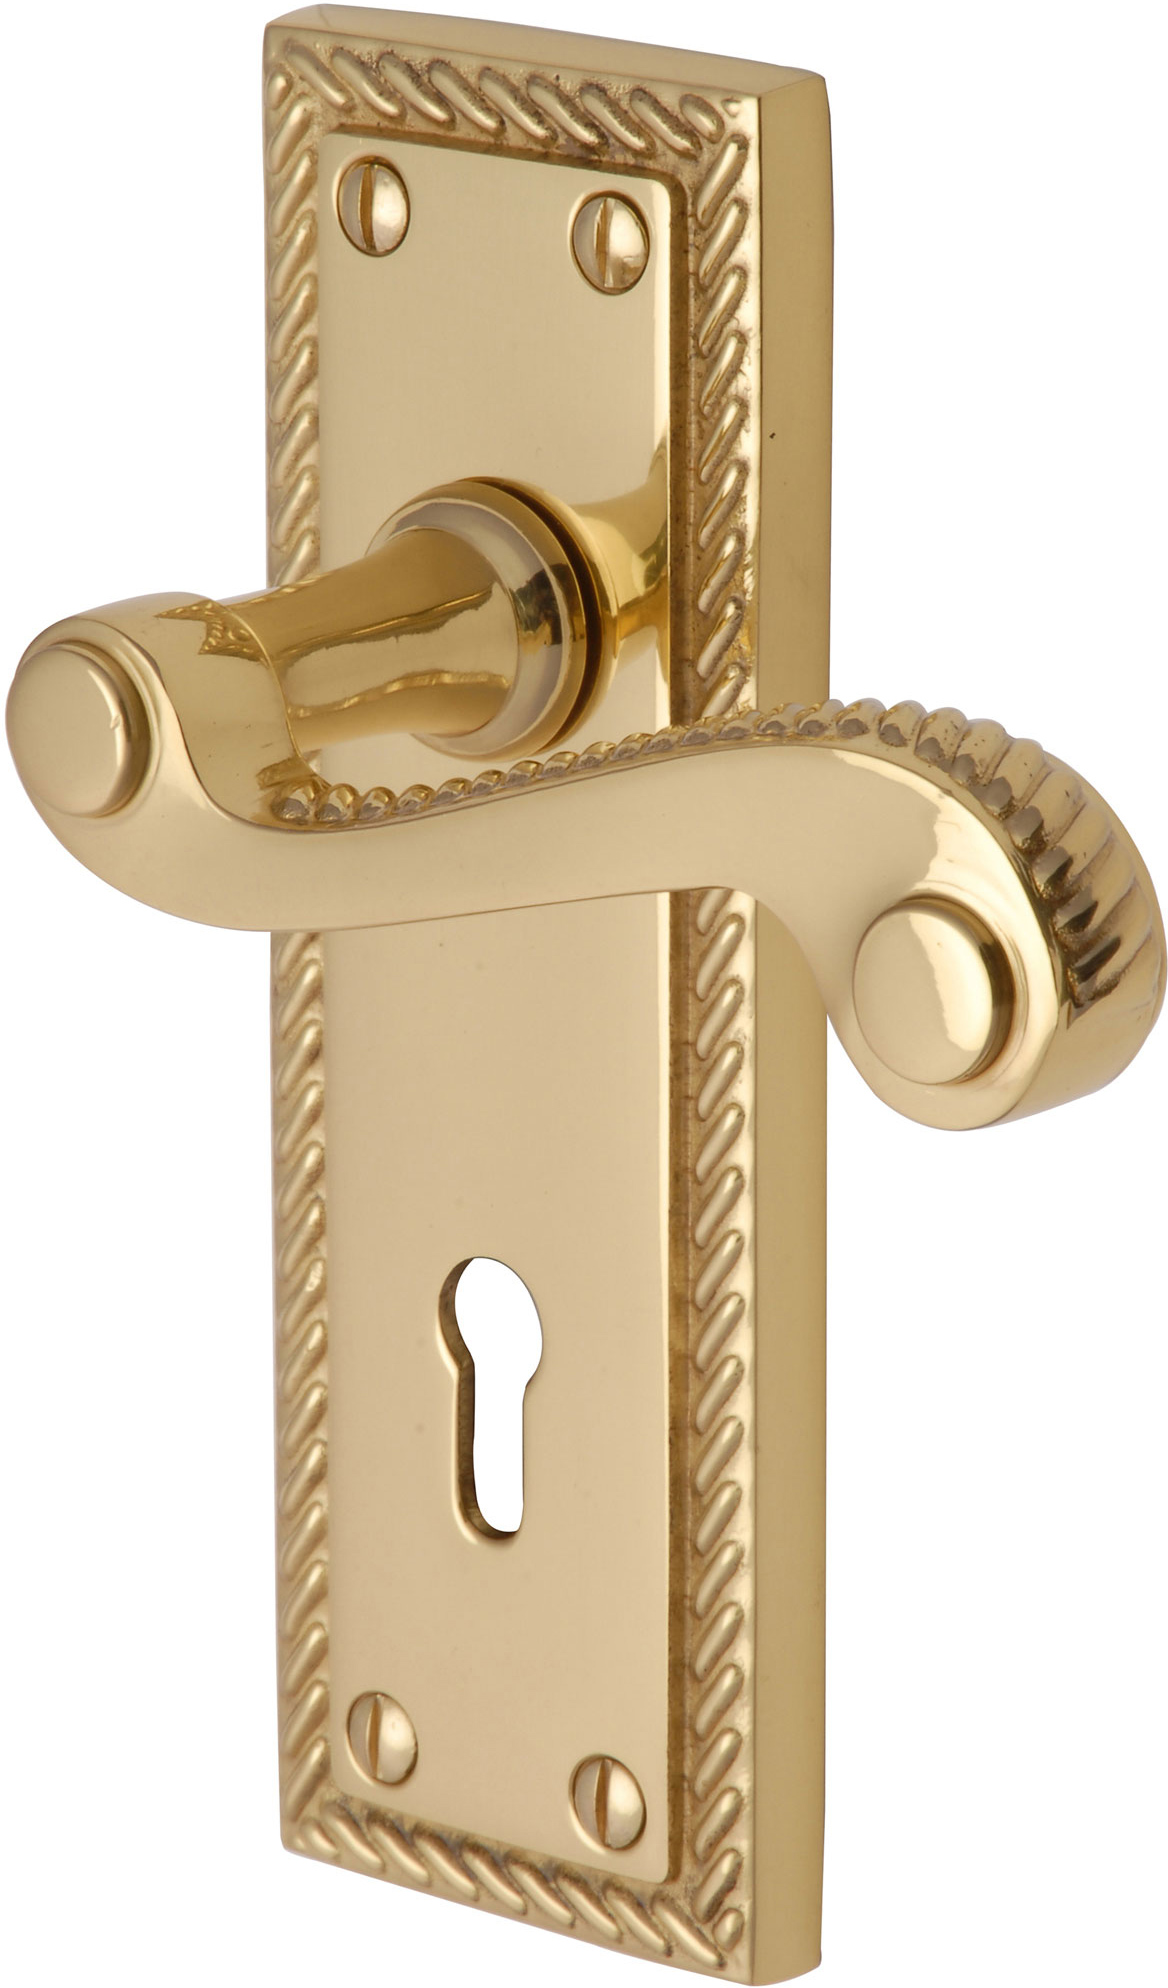 doors and knobs hardware photo - 18